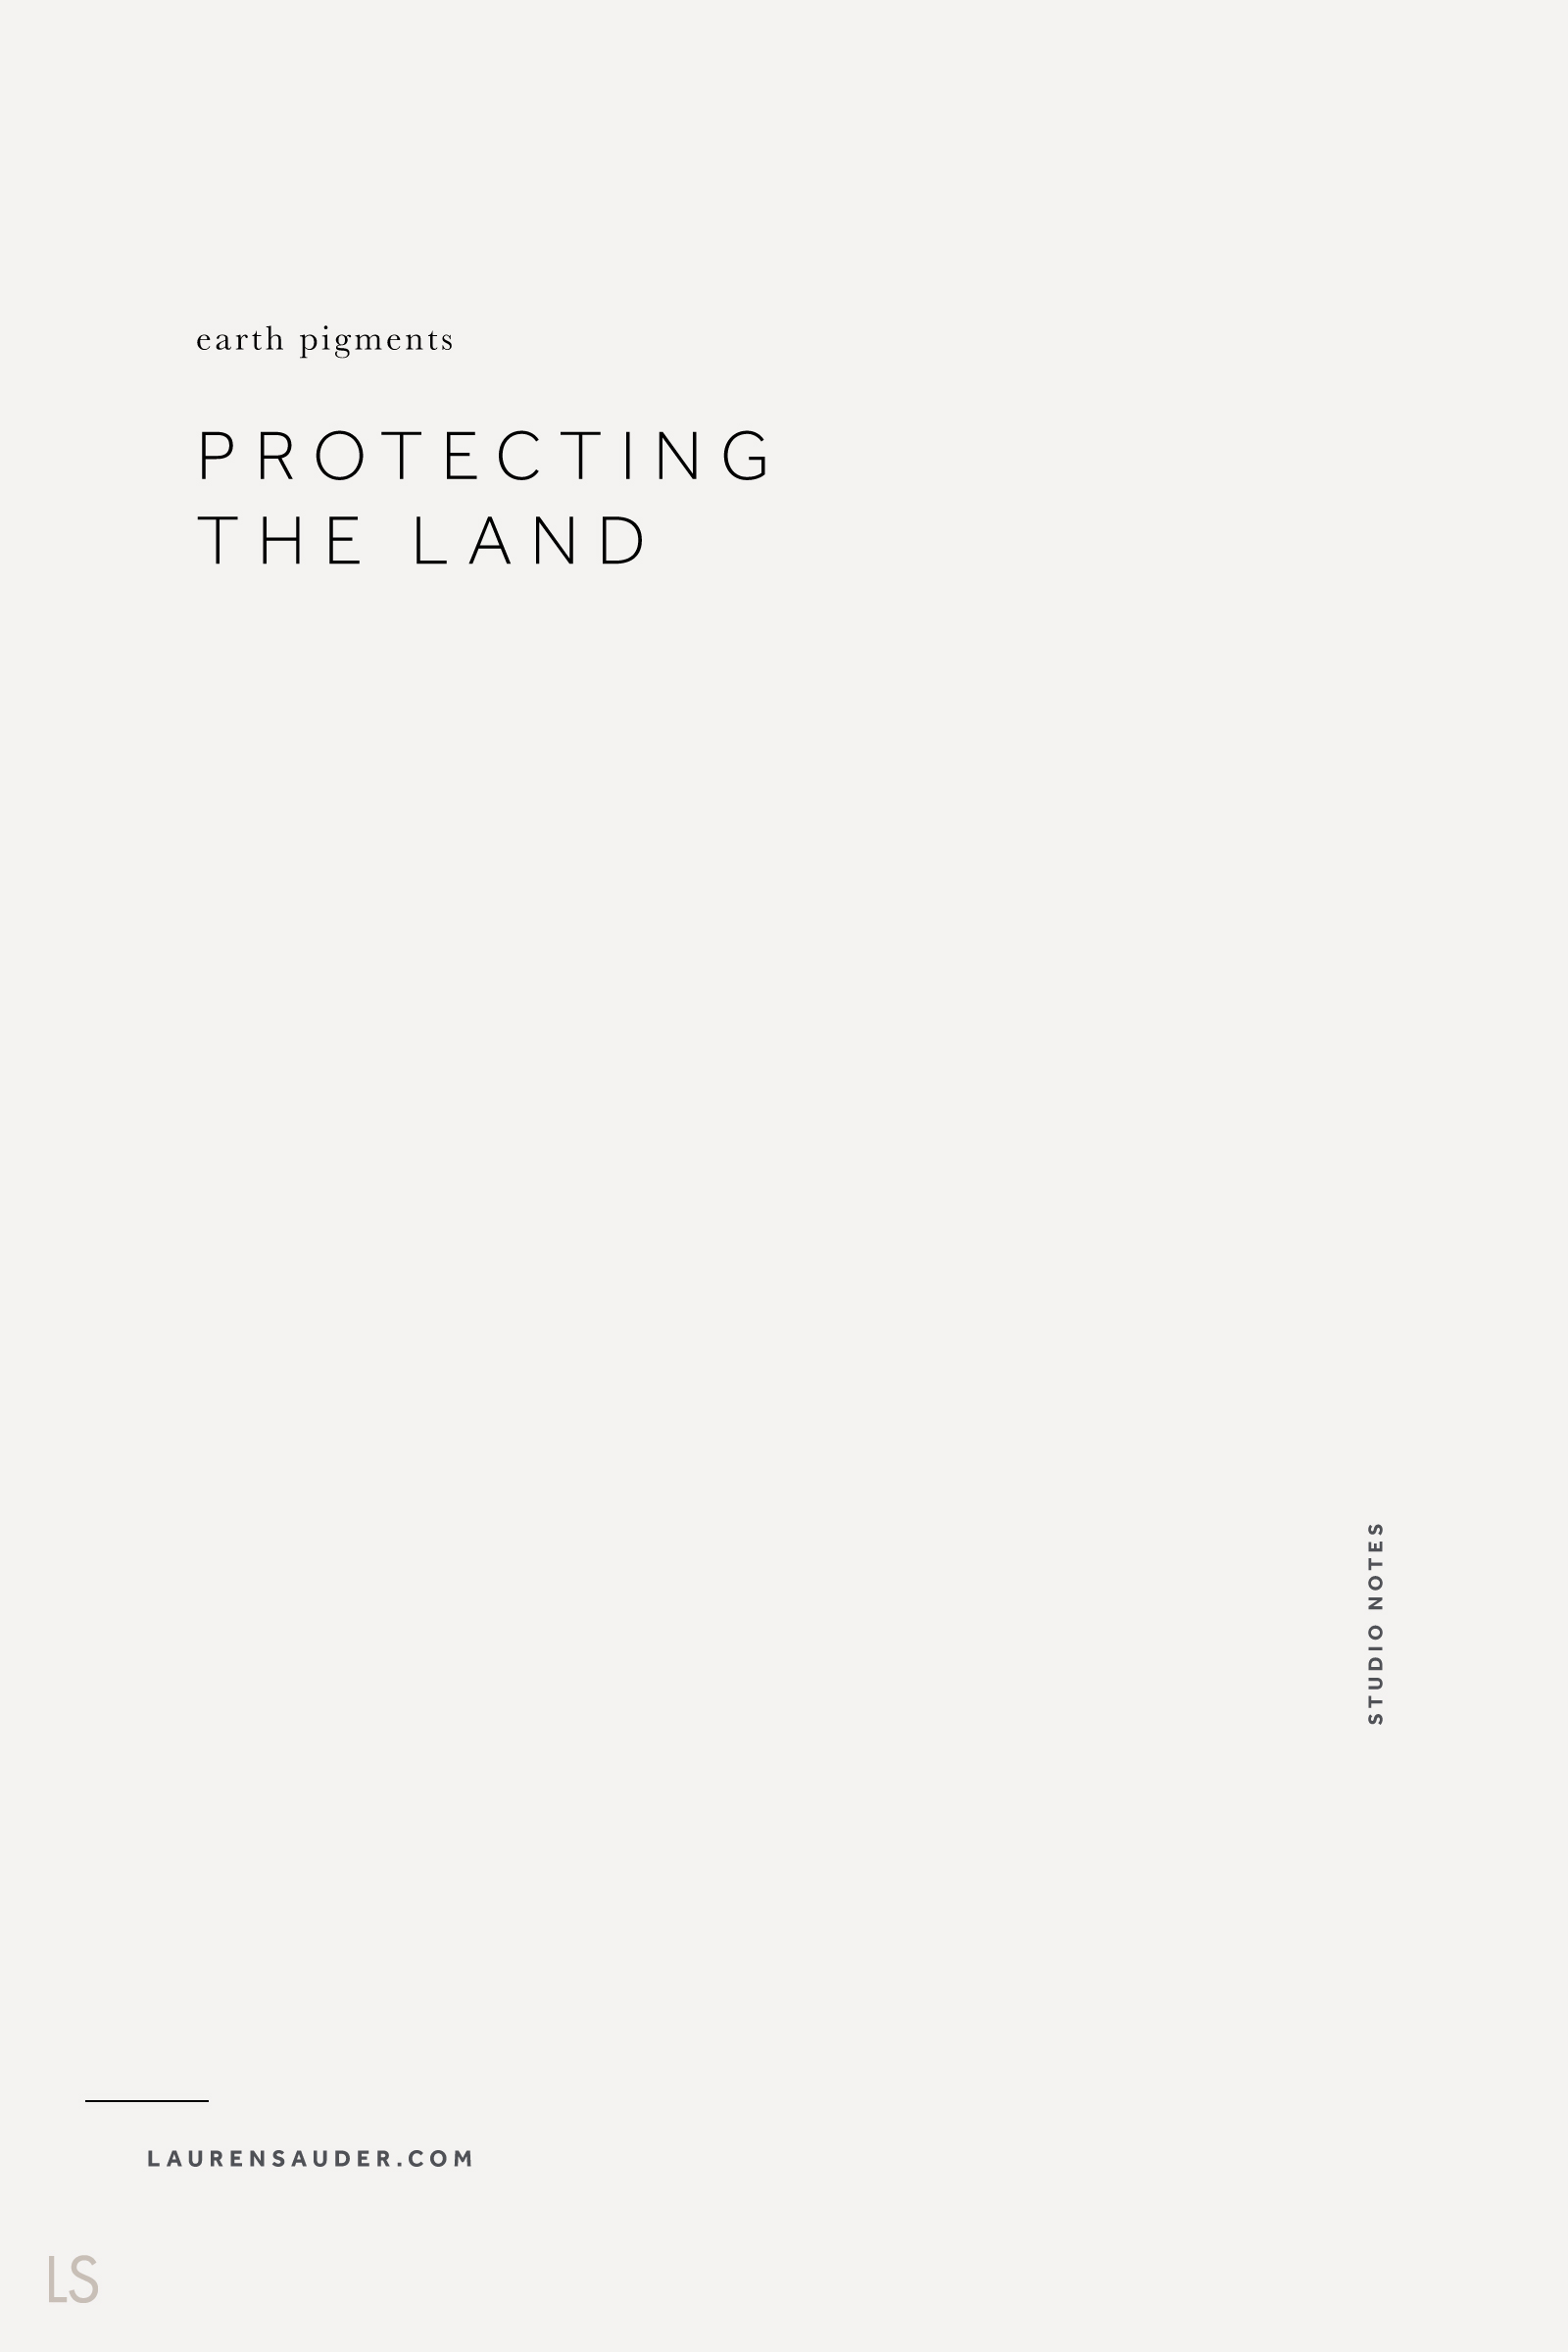 Protecting the Land